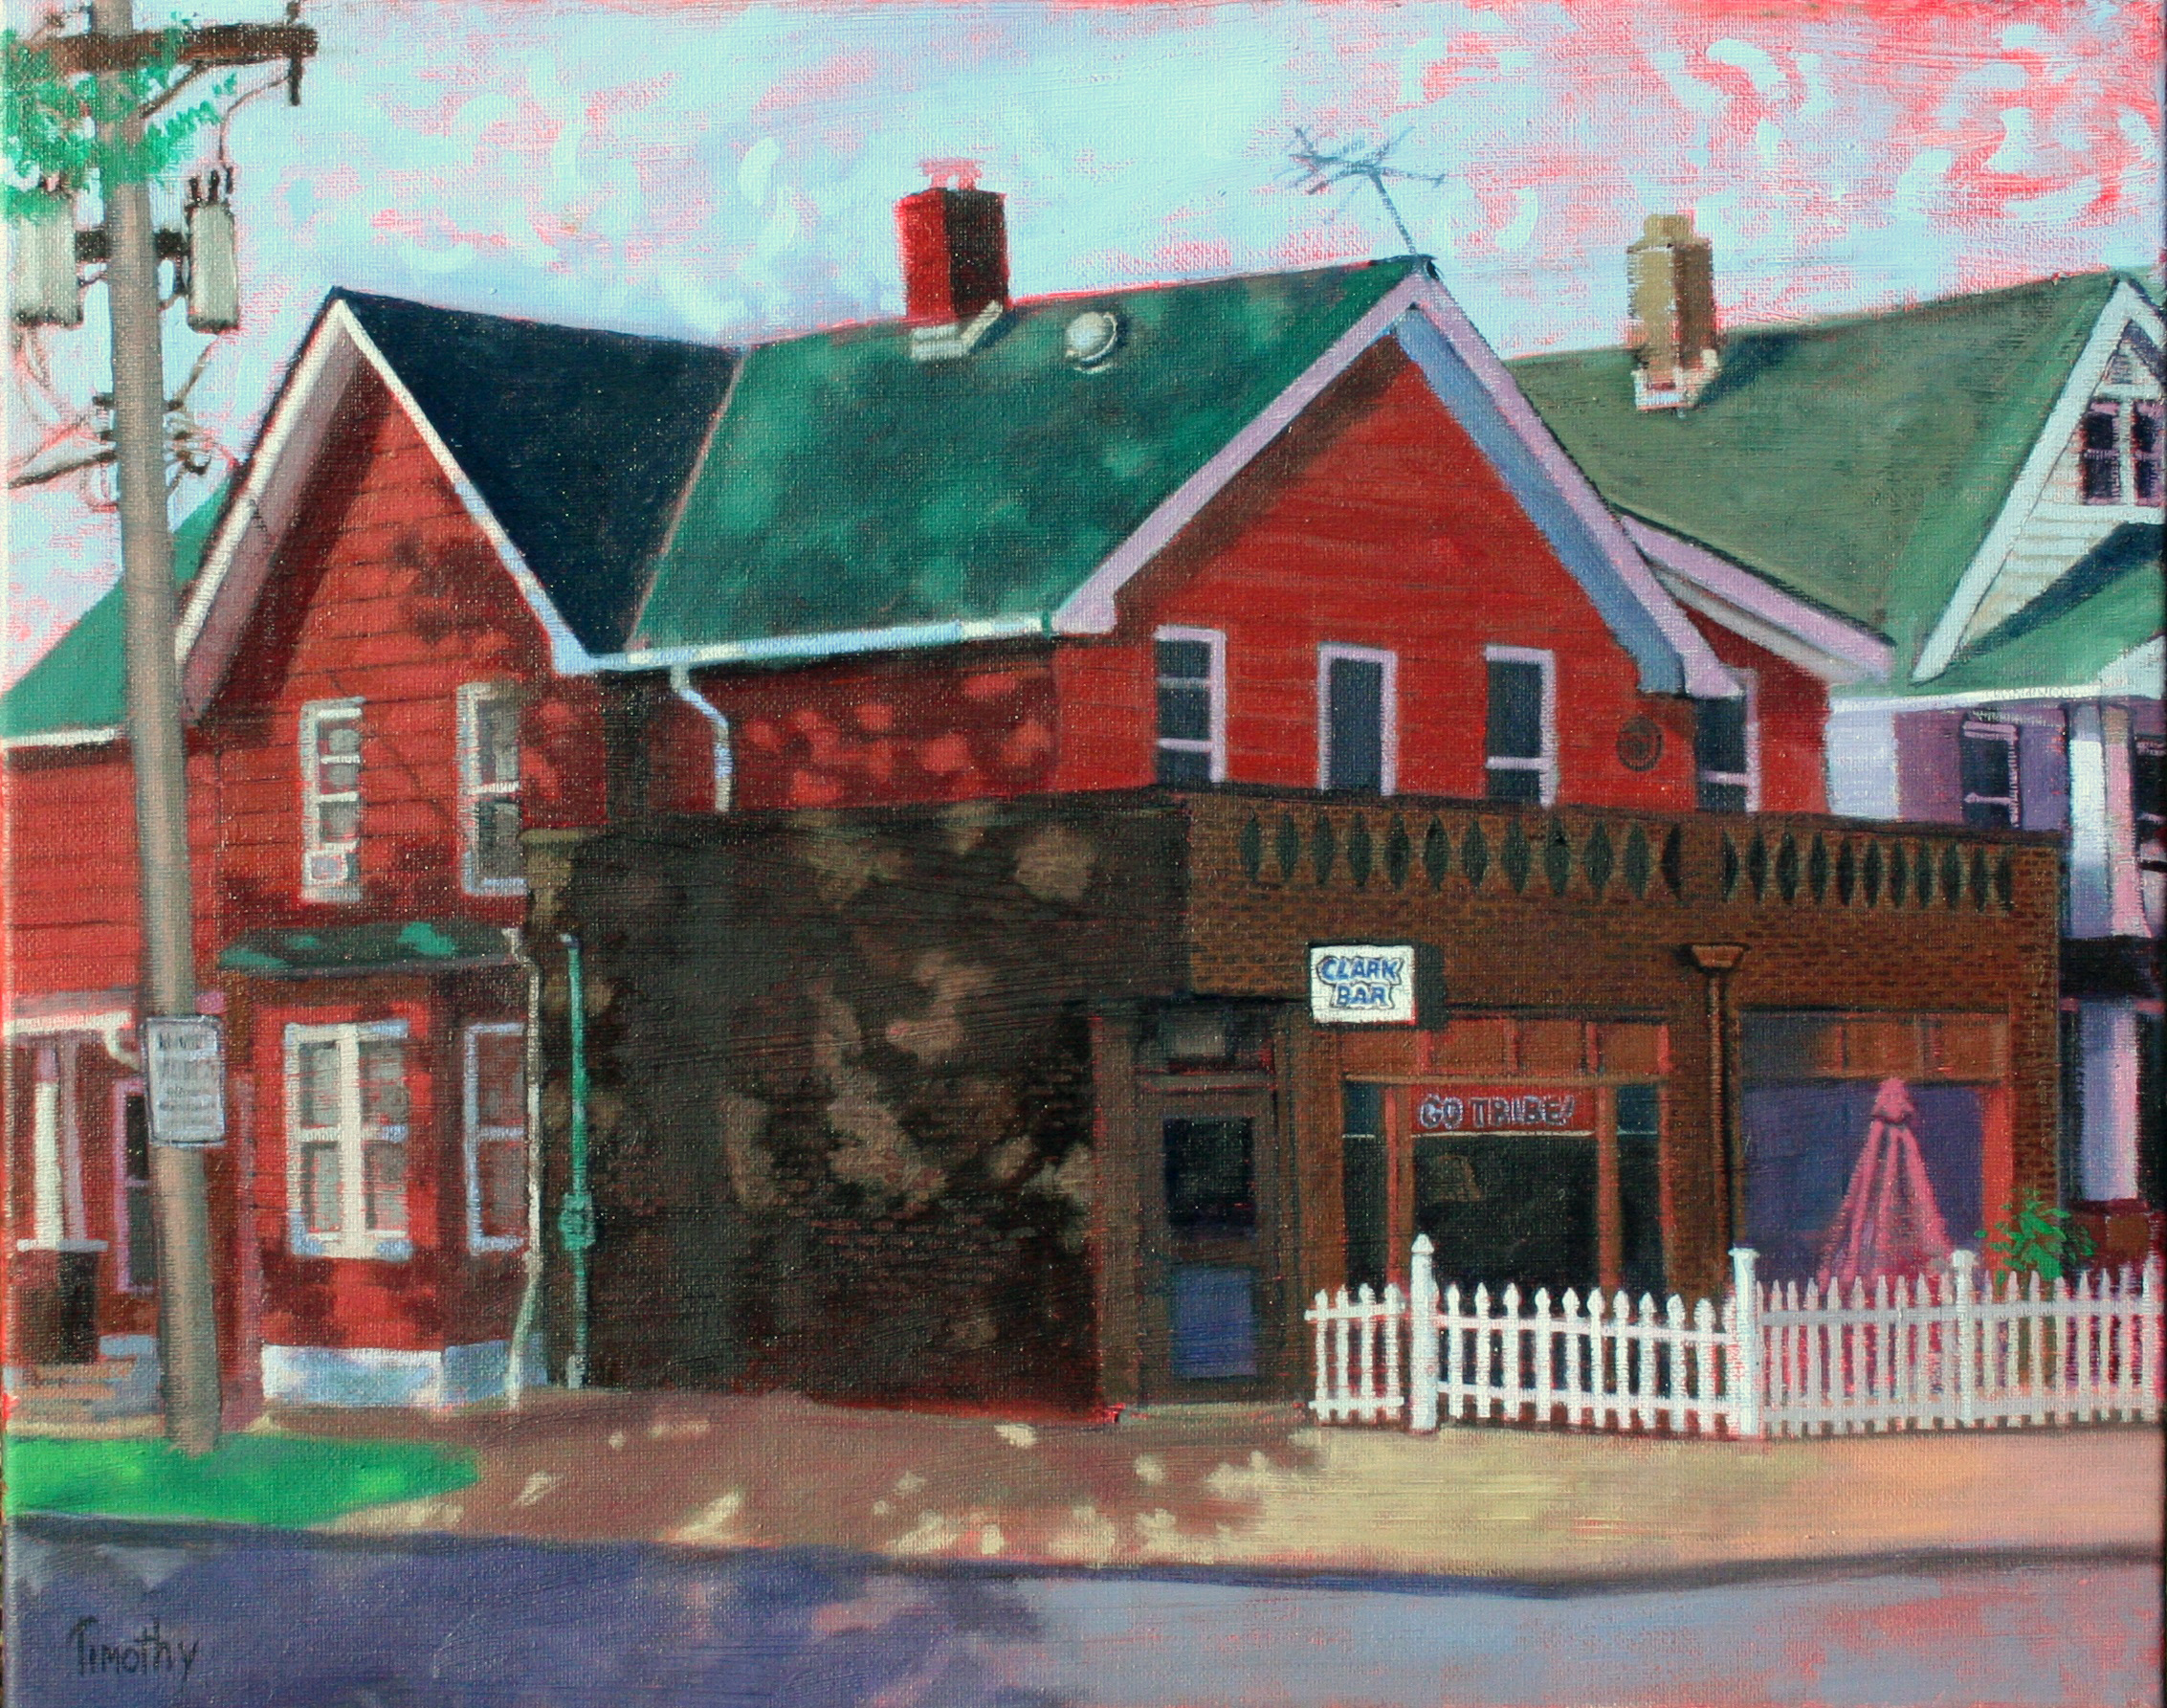 The Clark Bar, painted from across the street.